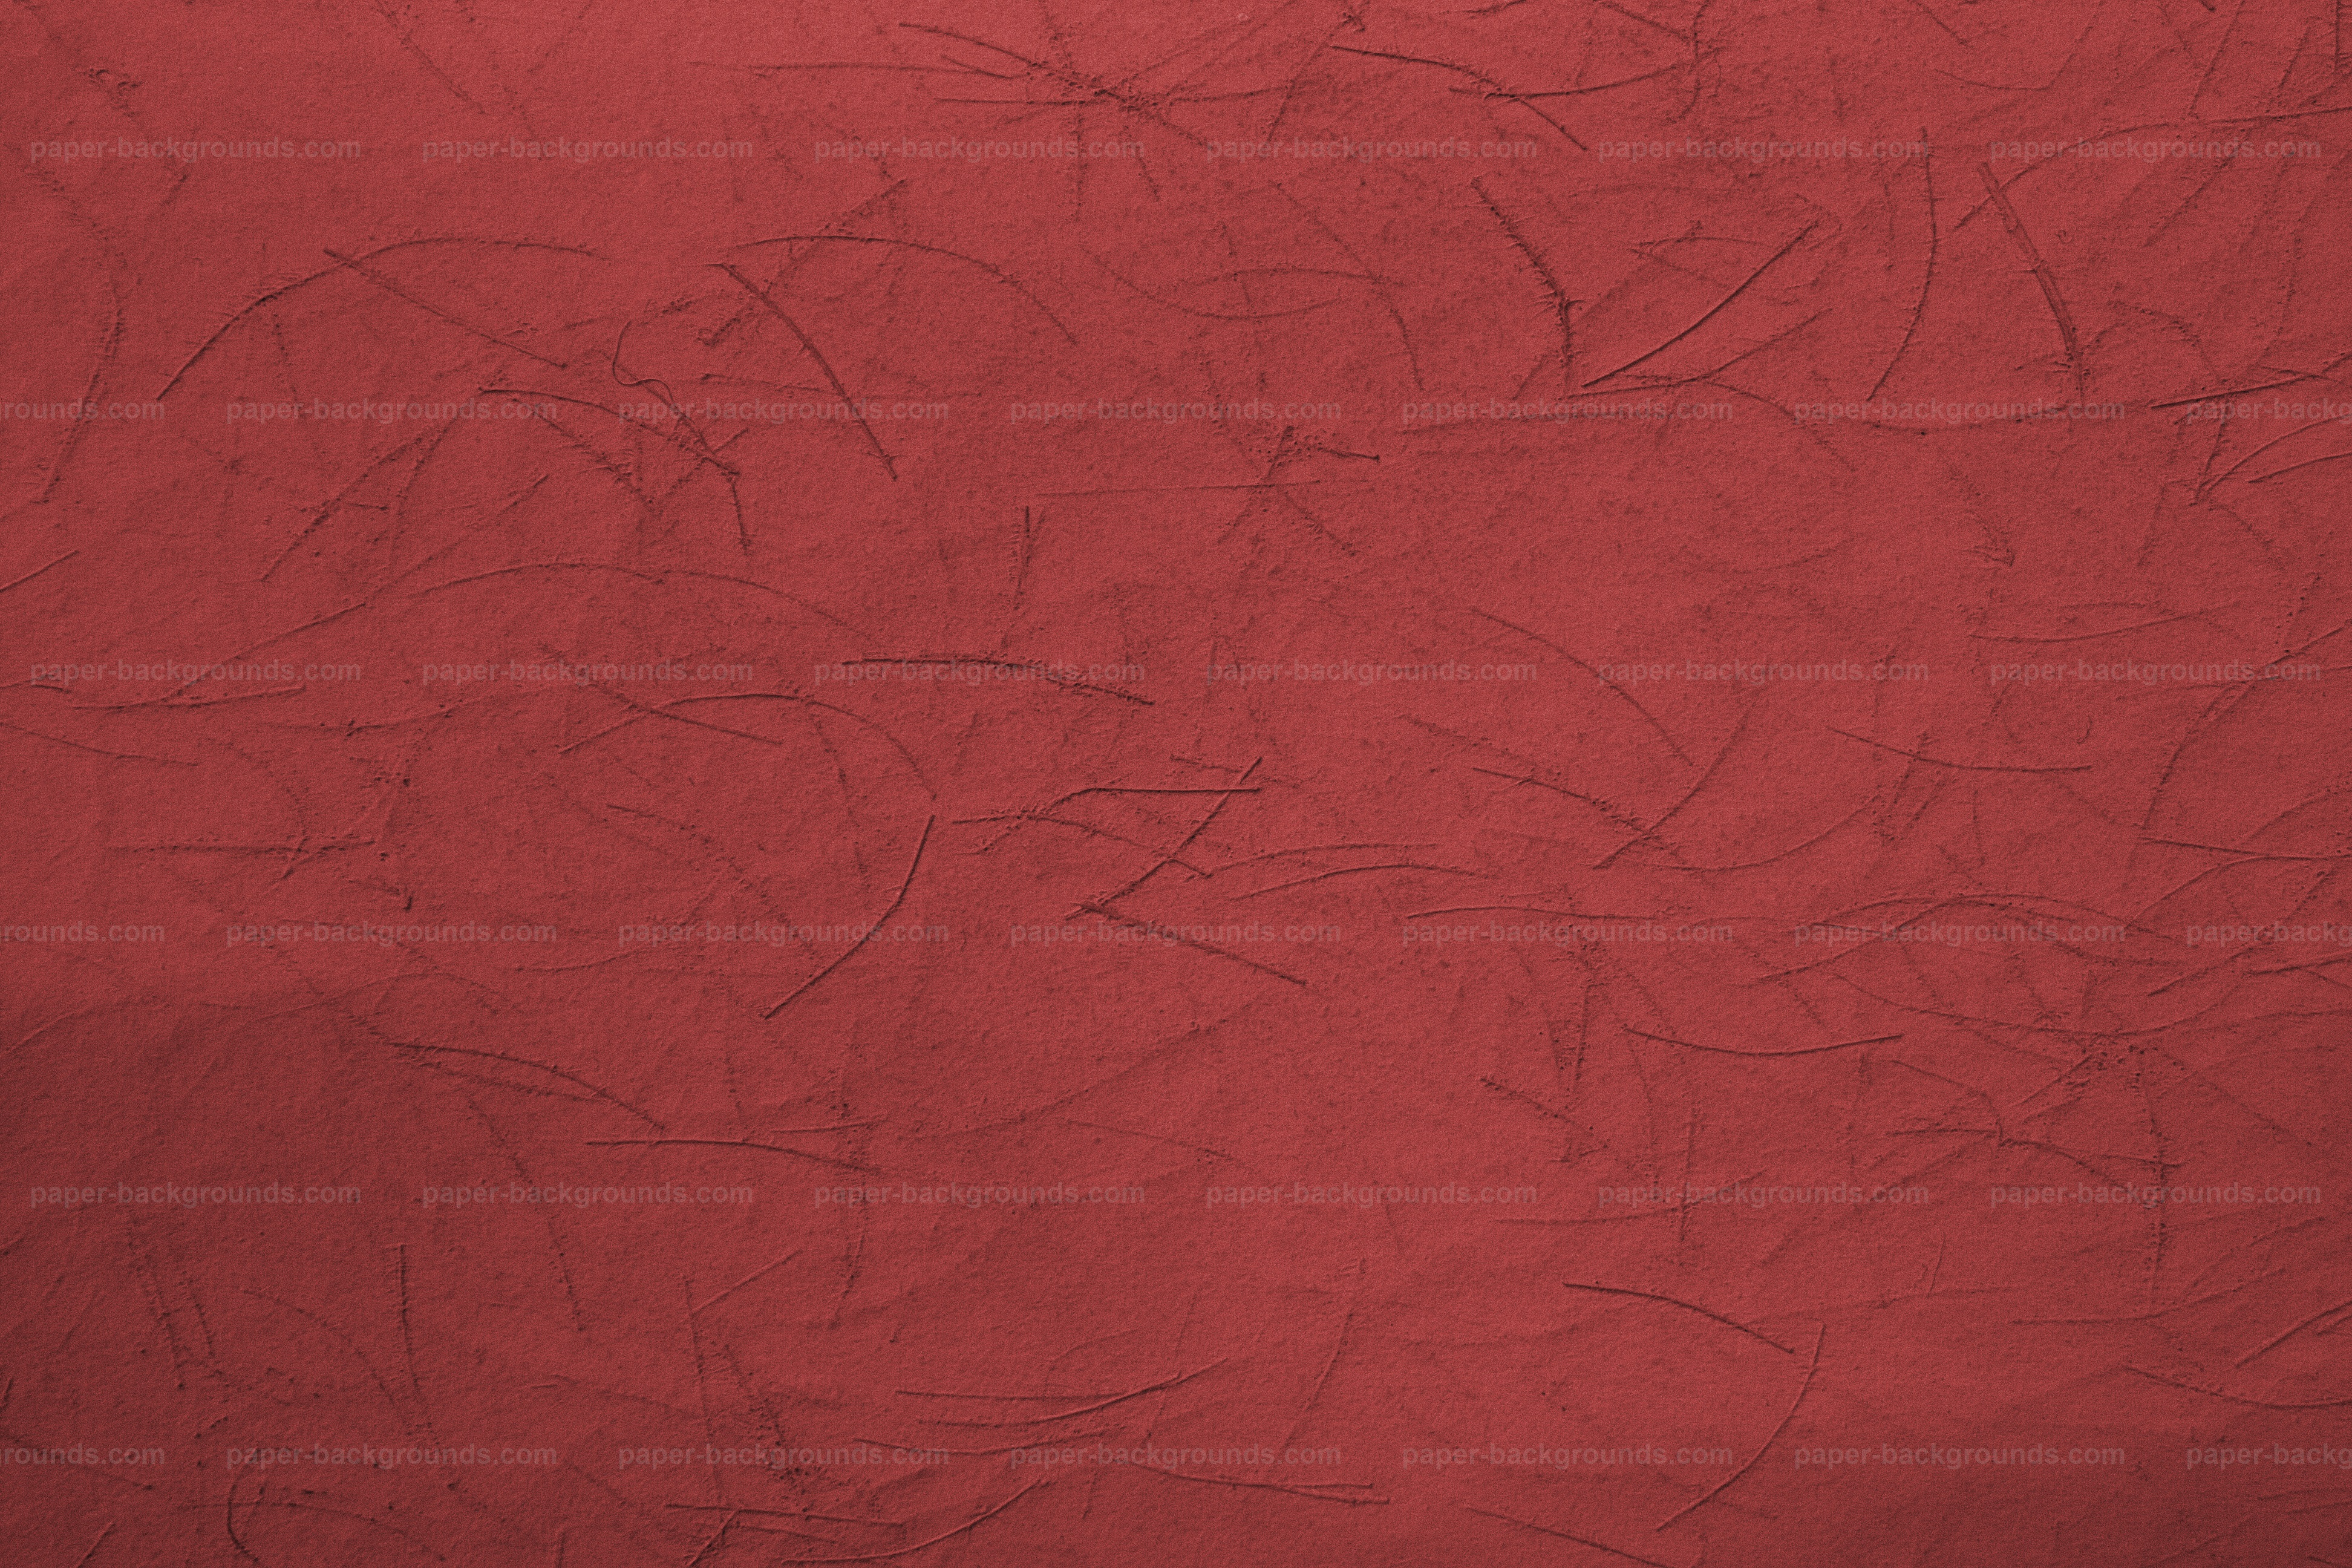 Paper Backgrounds Red Scratched Wall Background